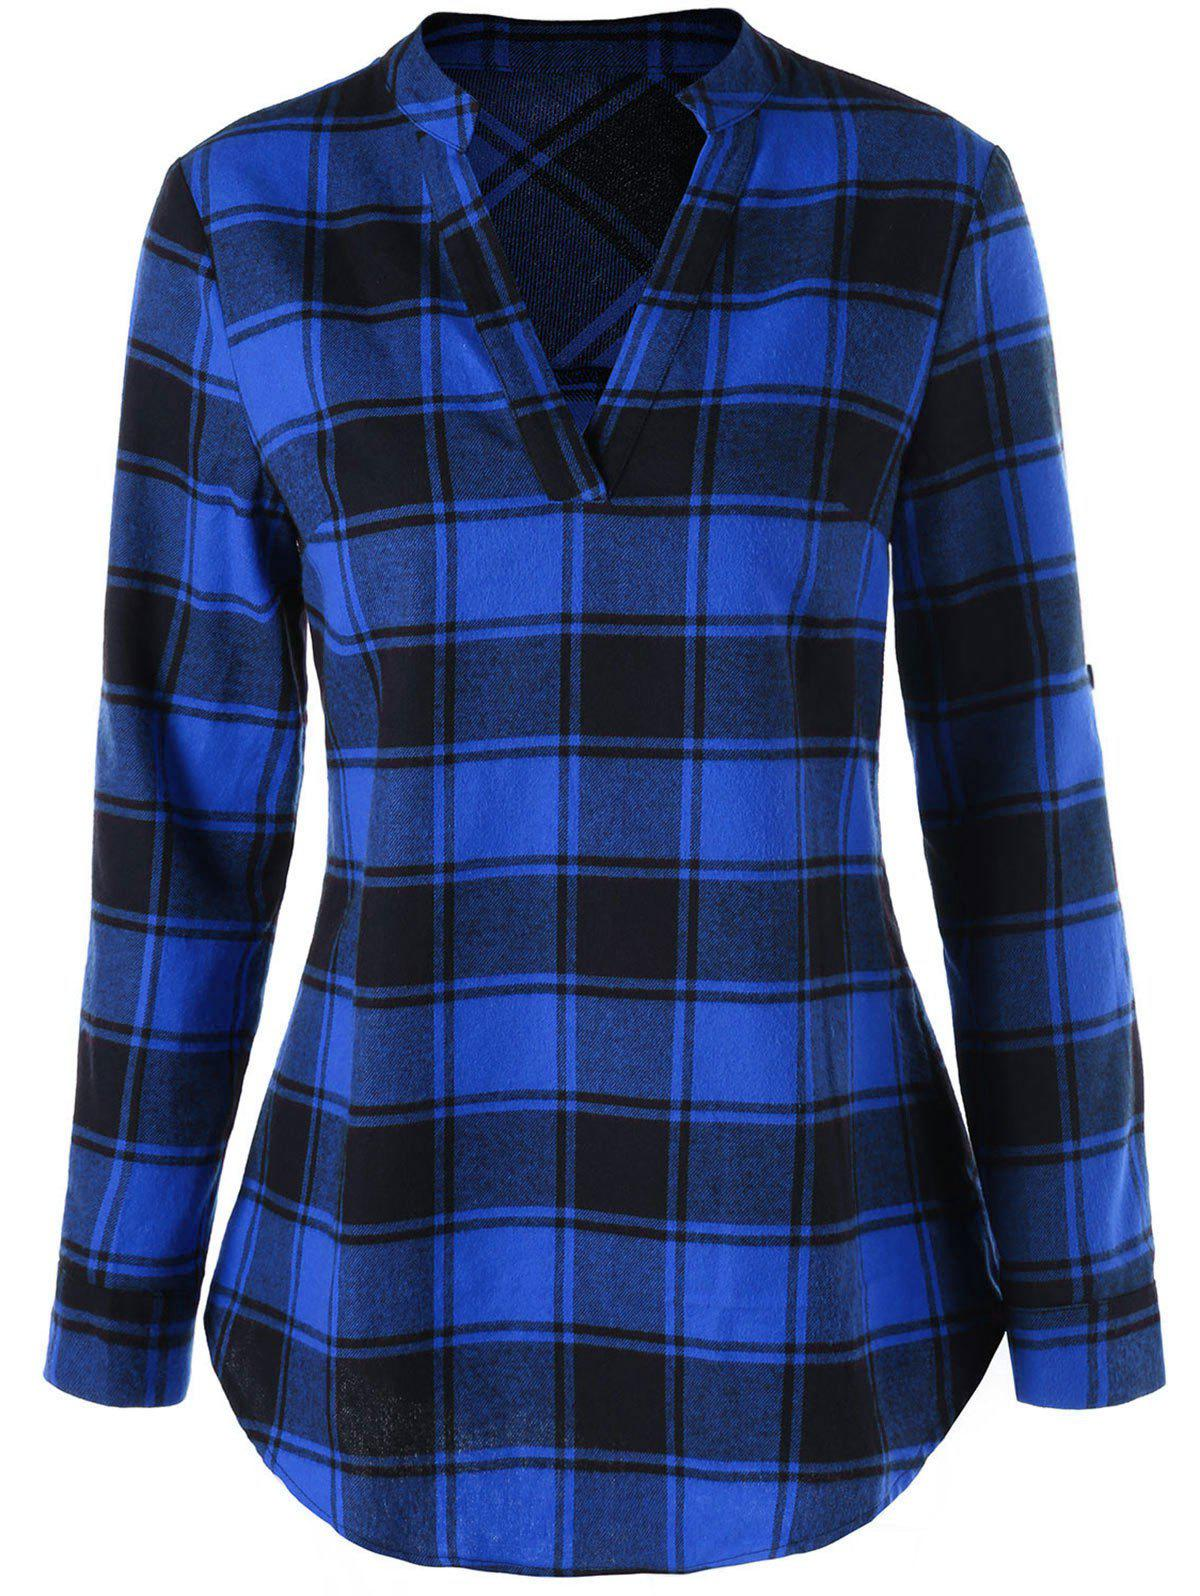 Split Neck Curved Hem Plaid Blouse